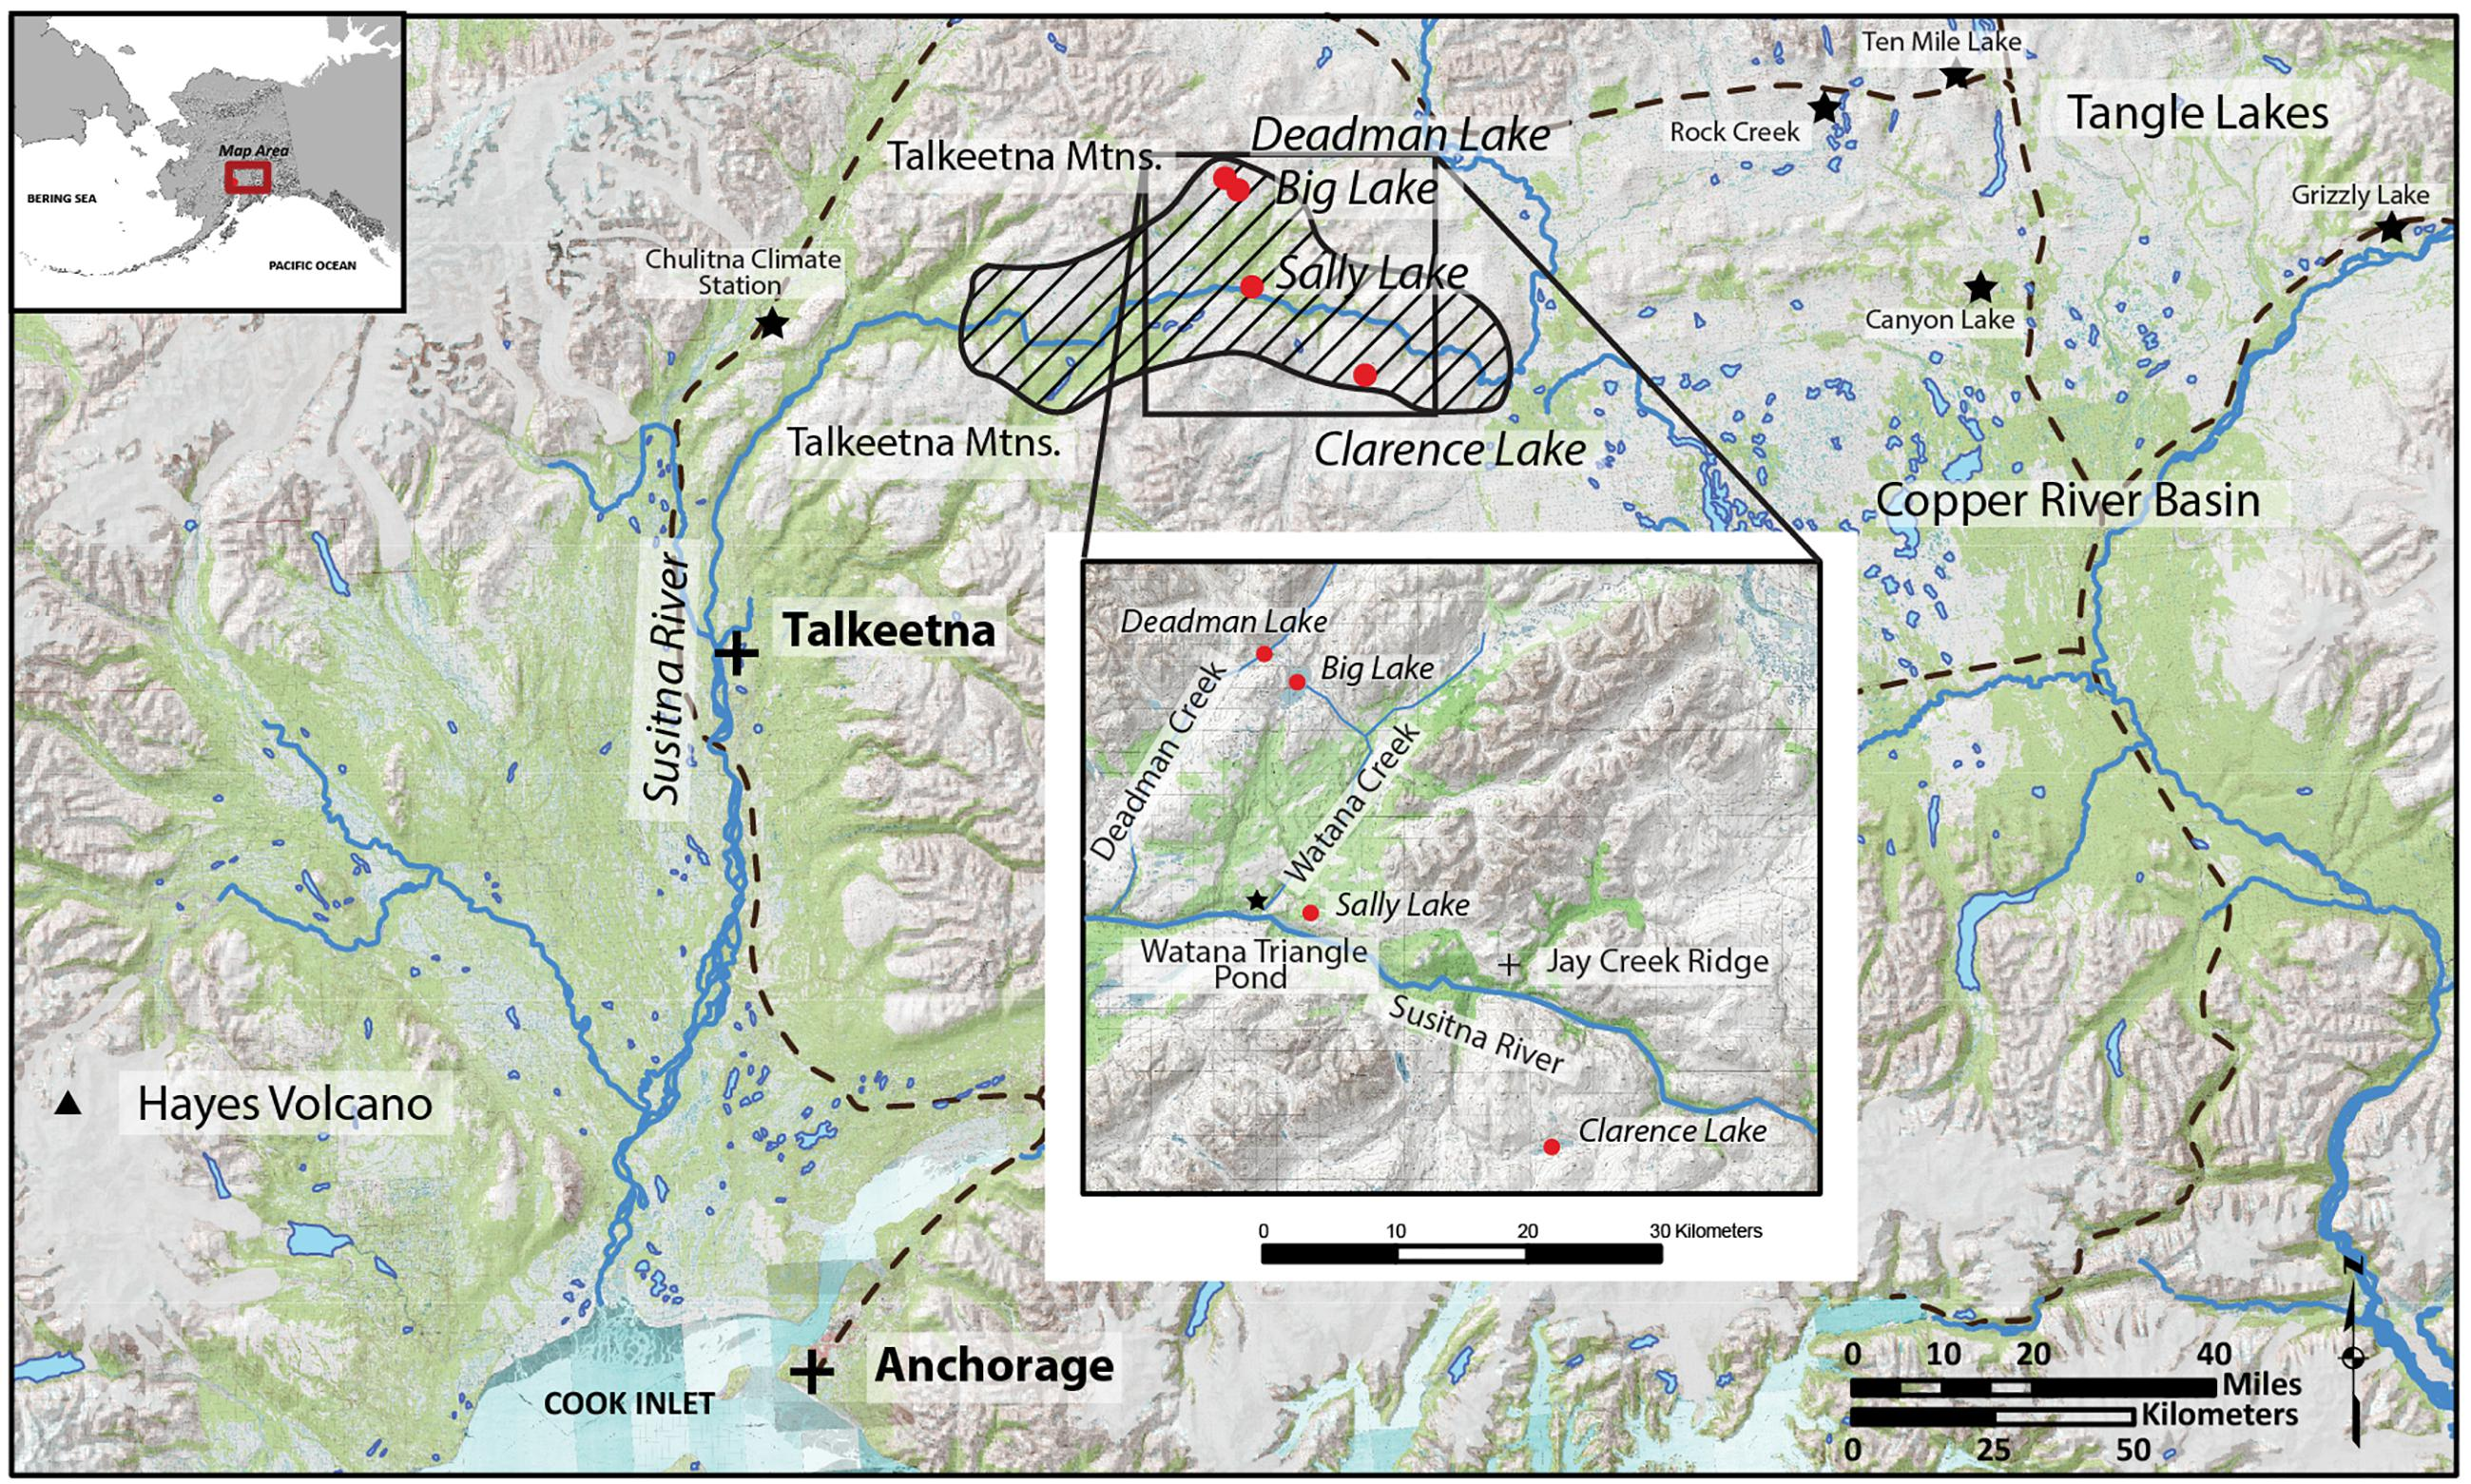 Frontiers | Late-Glacial Paleoecology of the Middle Susitna Valley